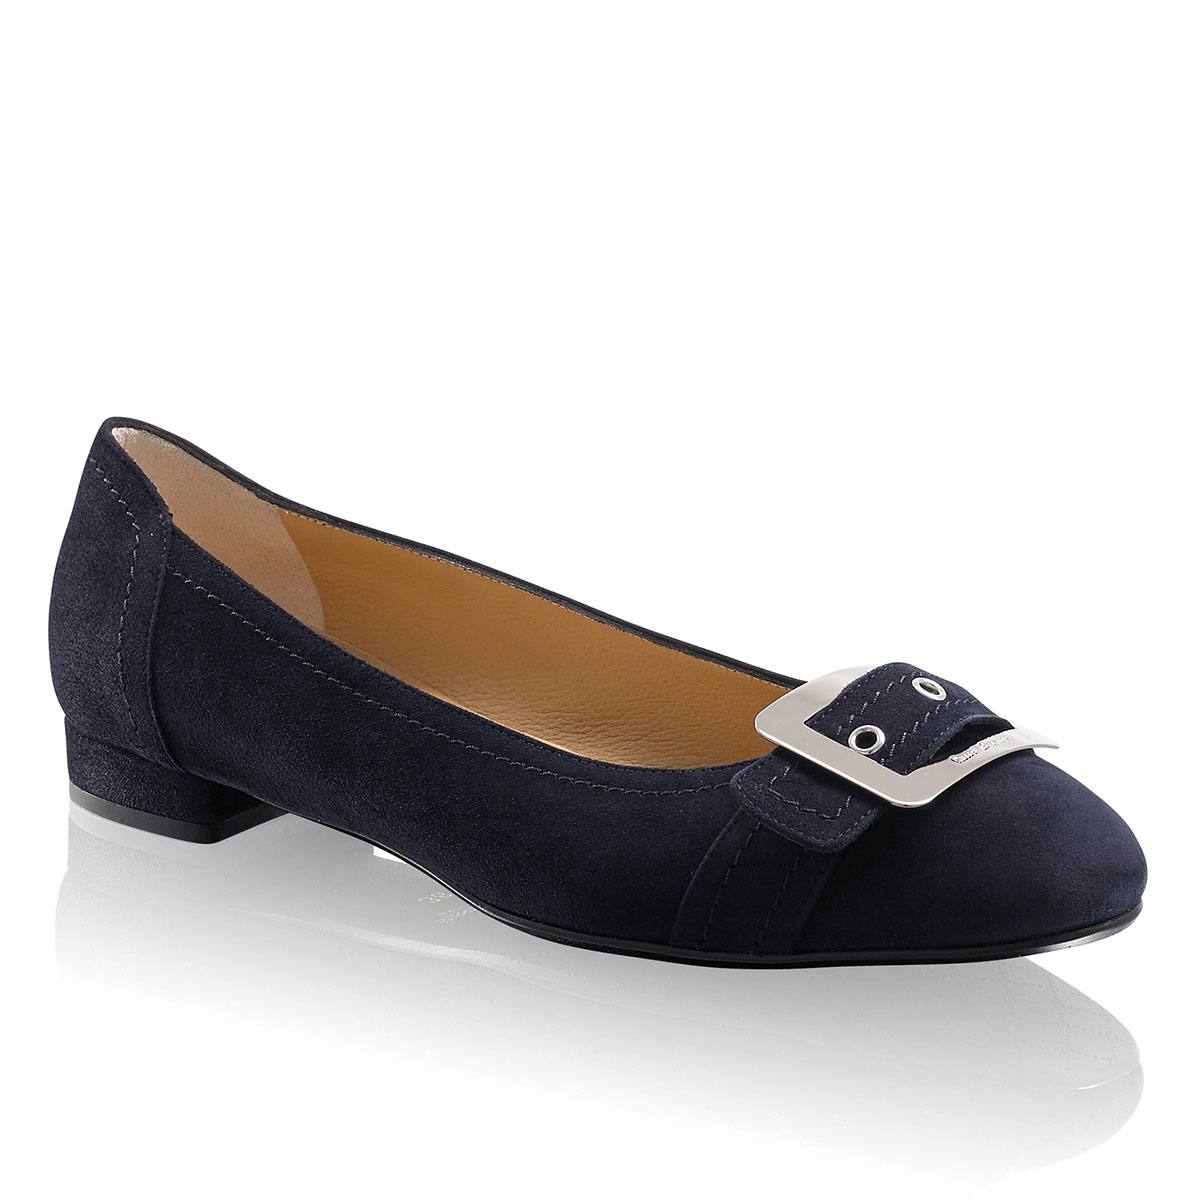 Russell And Bromley BLACKBELT Buckle Flat